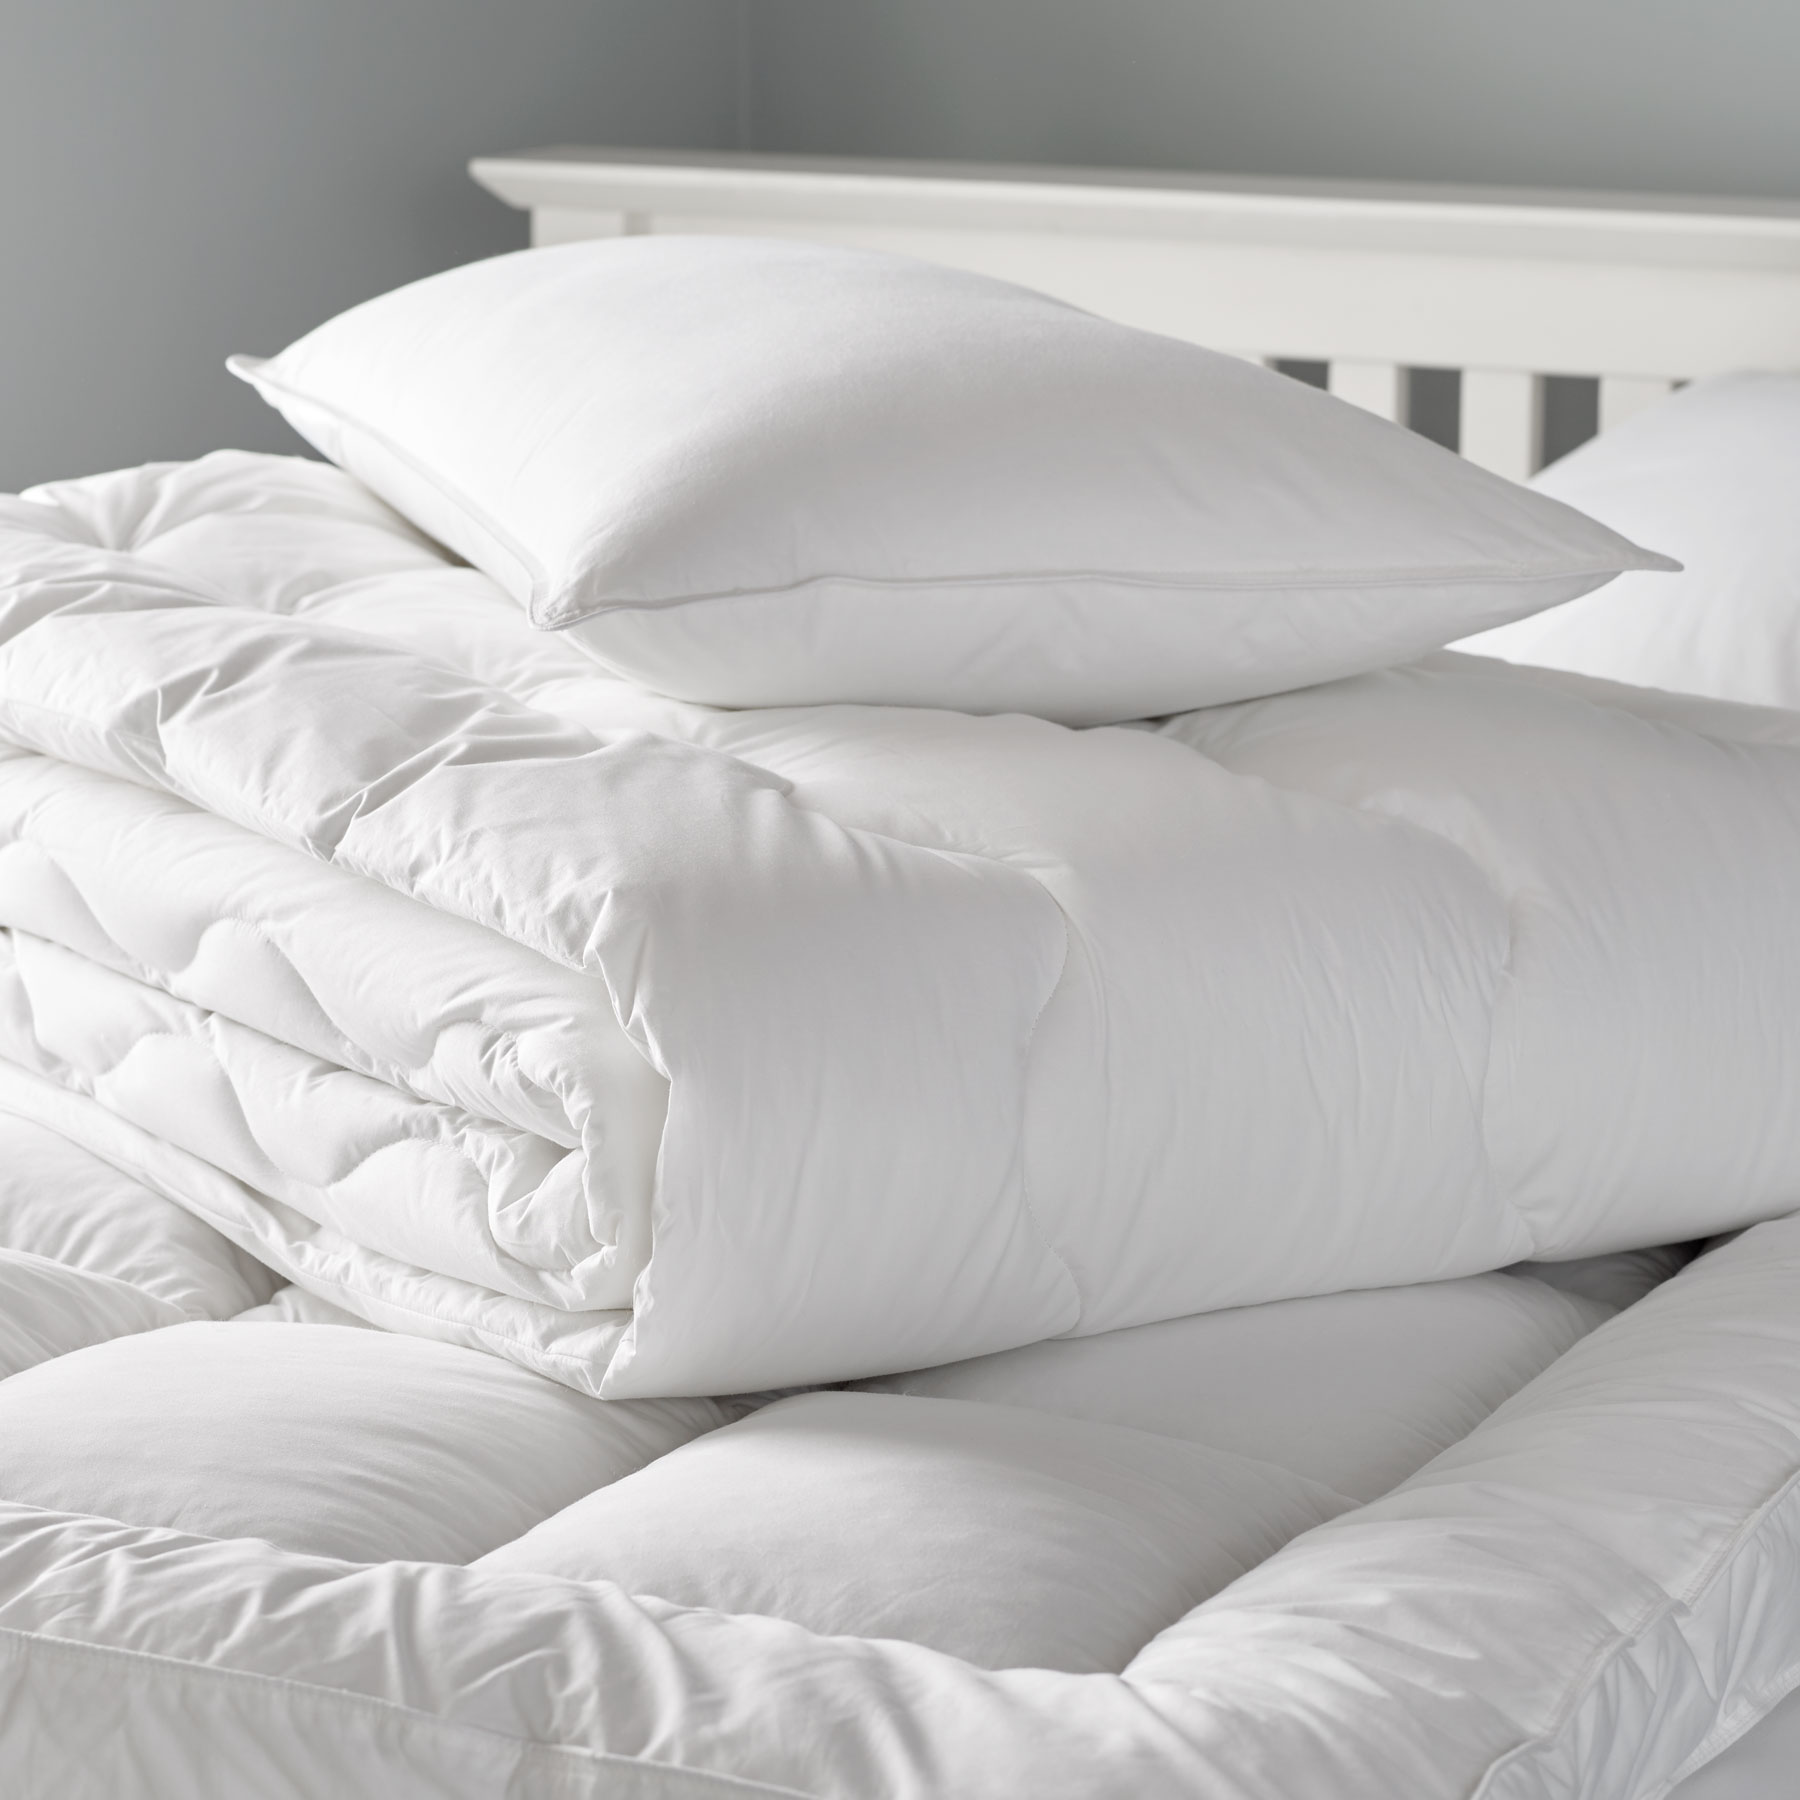 View Filled Bedding Collections Collection Details